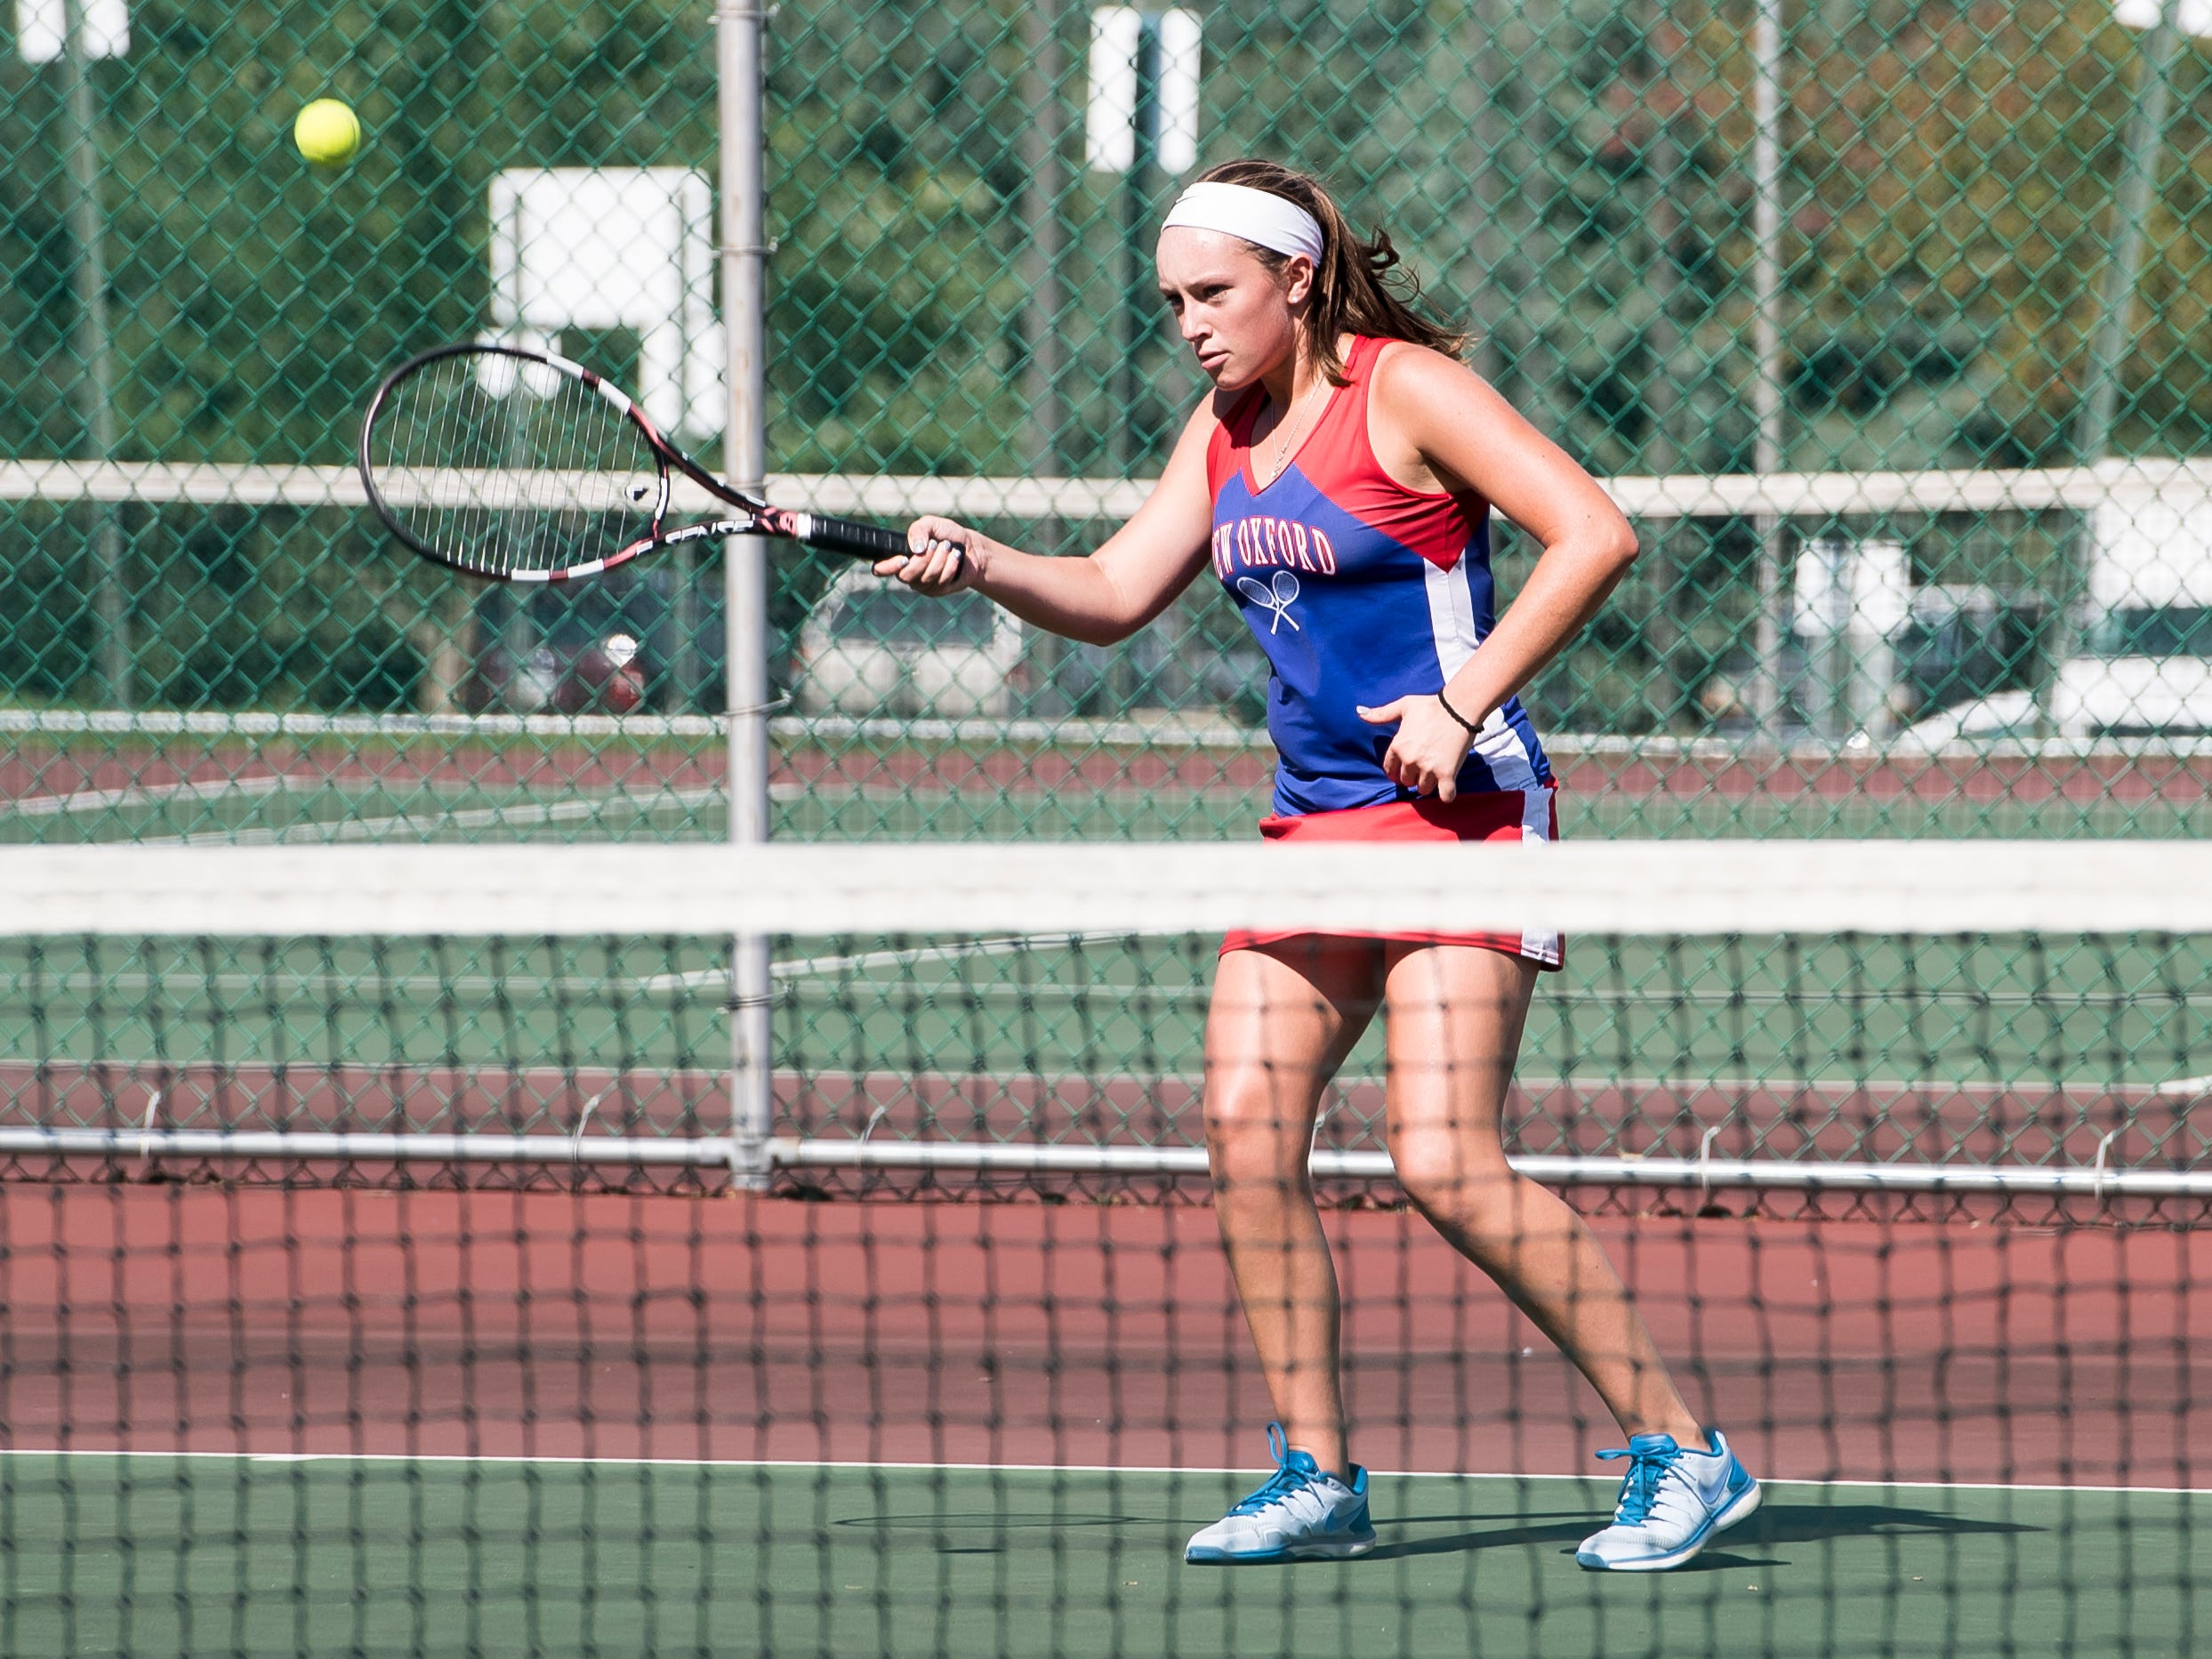 New Oxford's Kasi Conjack prepares to hit the ball to Susquehannocks Emily Ditt during the first round of the YAIAA 3A singles tournament on October 4, 2018. Conjack won 6-1, 6-2.